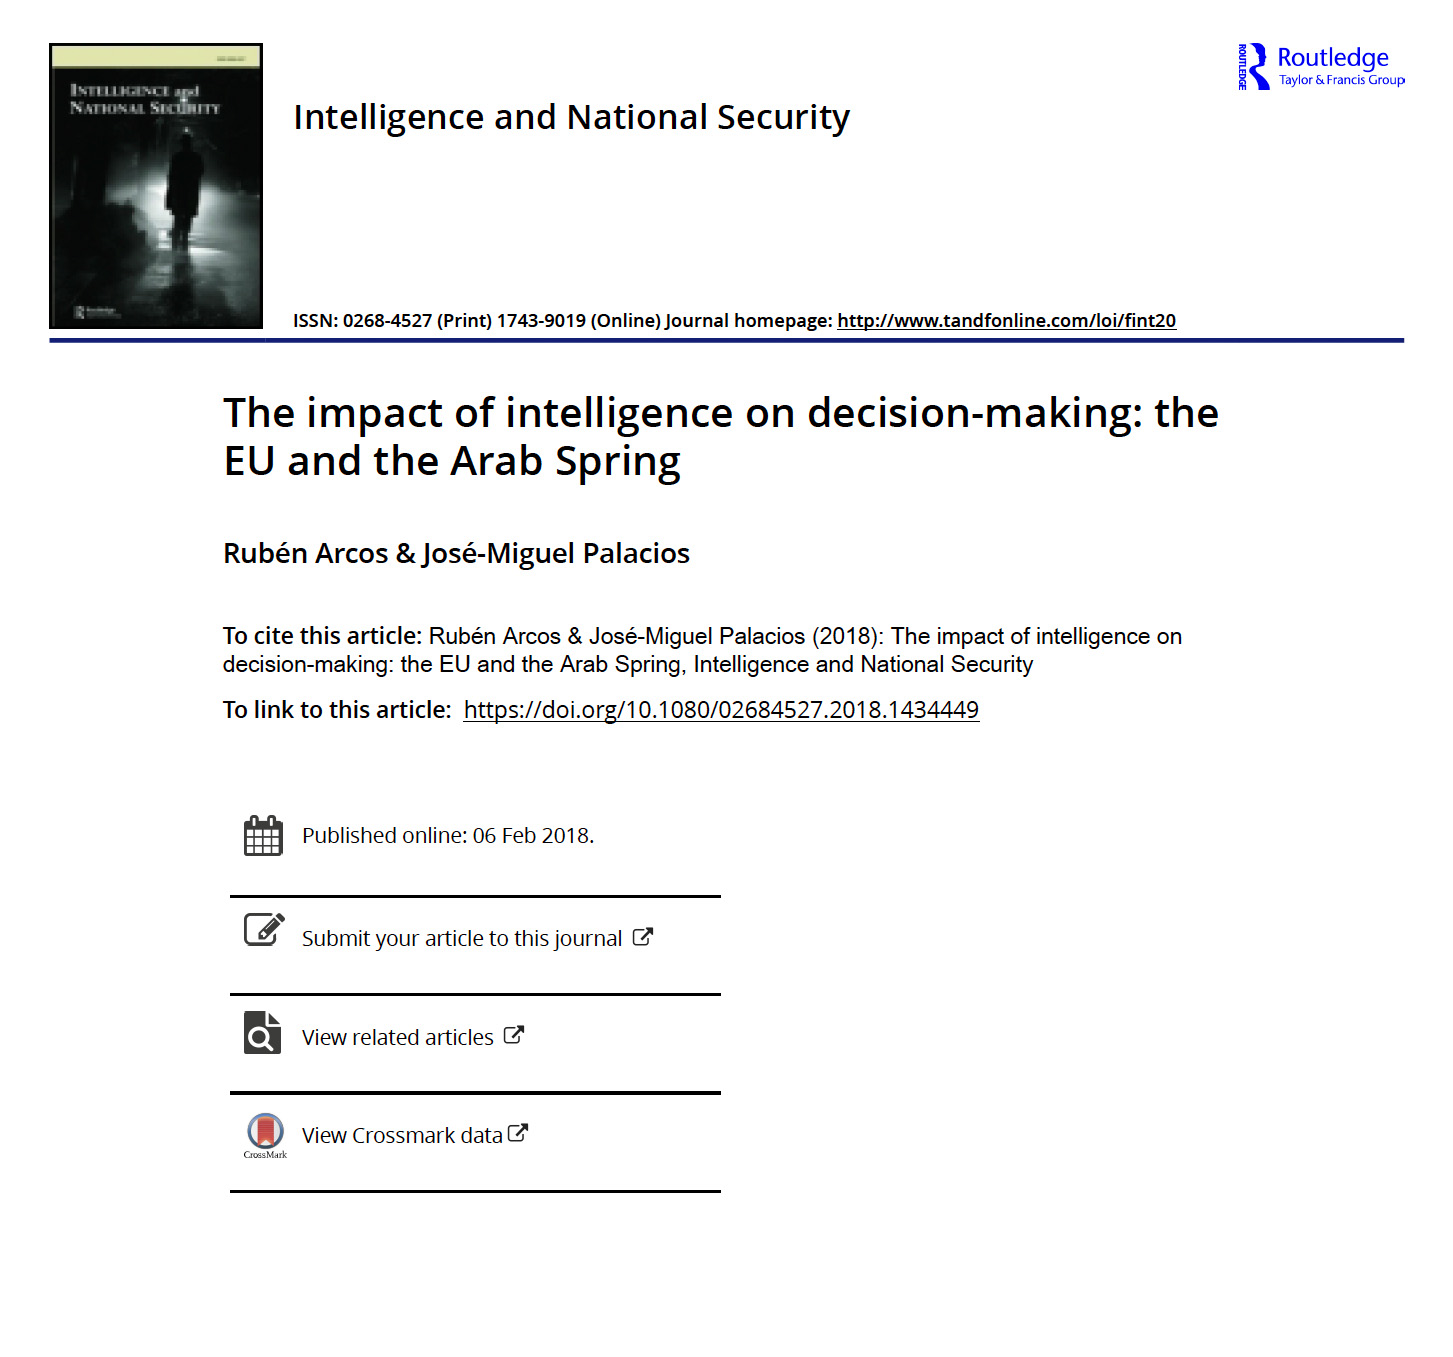 The impact of intelligence on decision-making: the EU and the Arab Spring